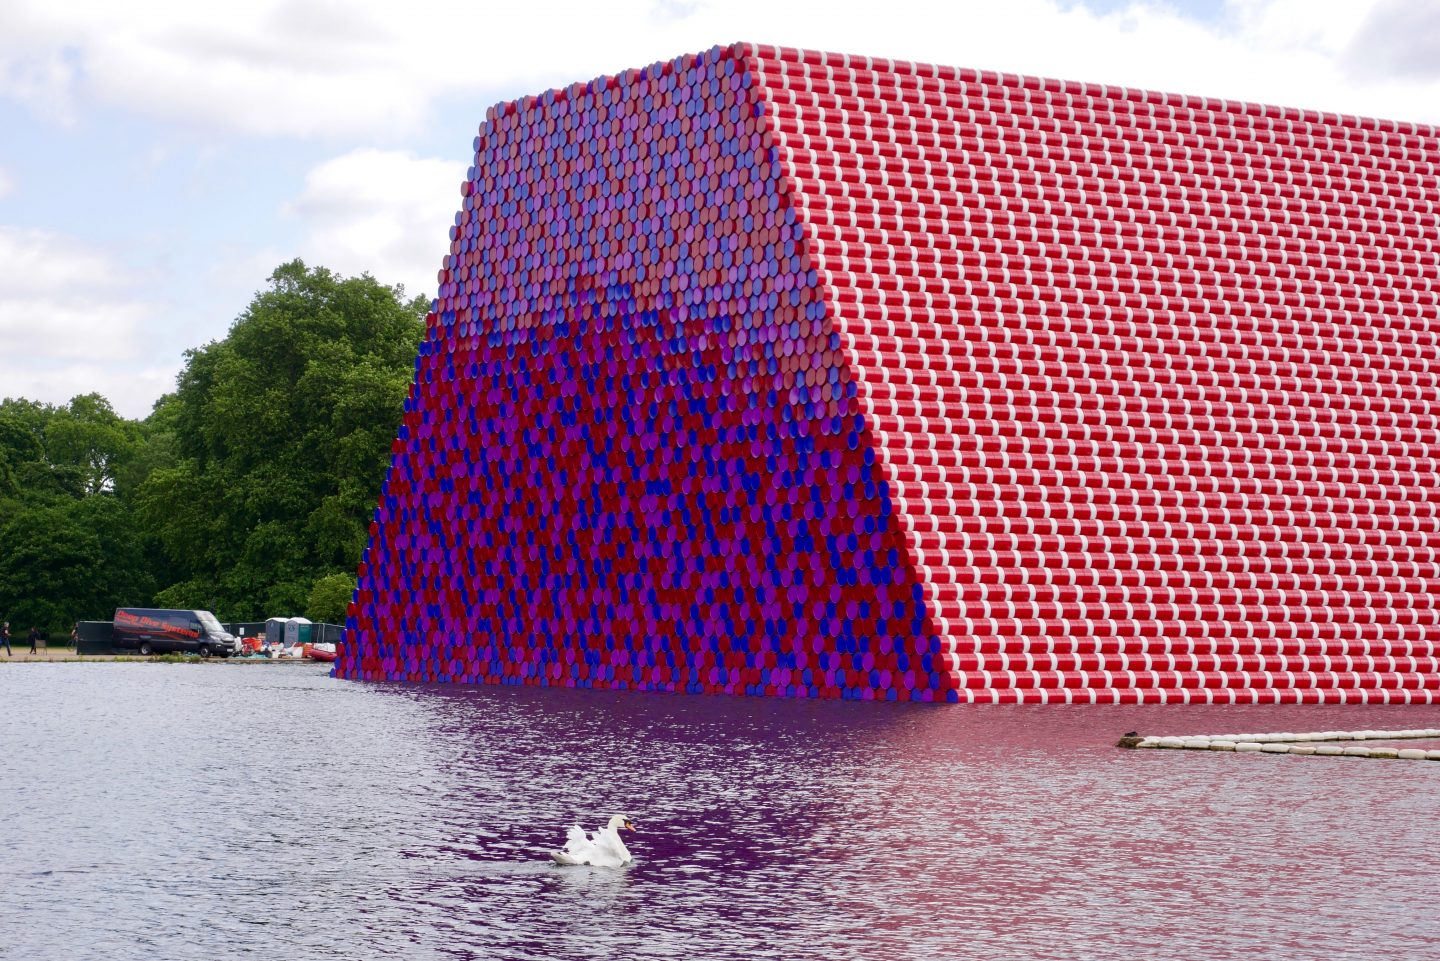 WHAT IS THAT?  THAT MY FRIEND IS THE CHRISTO LONDON MASTABA